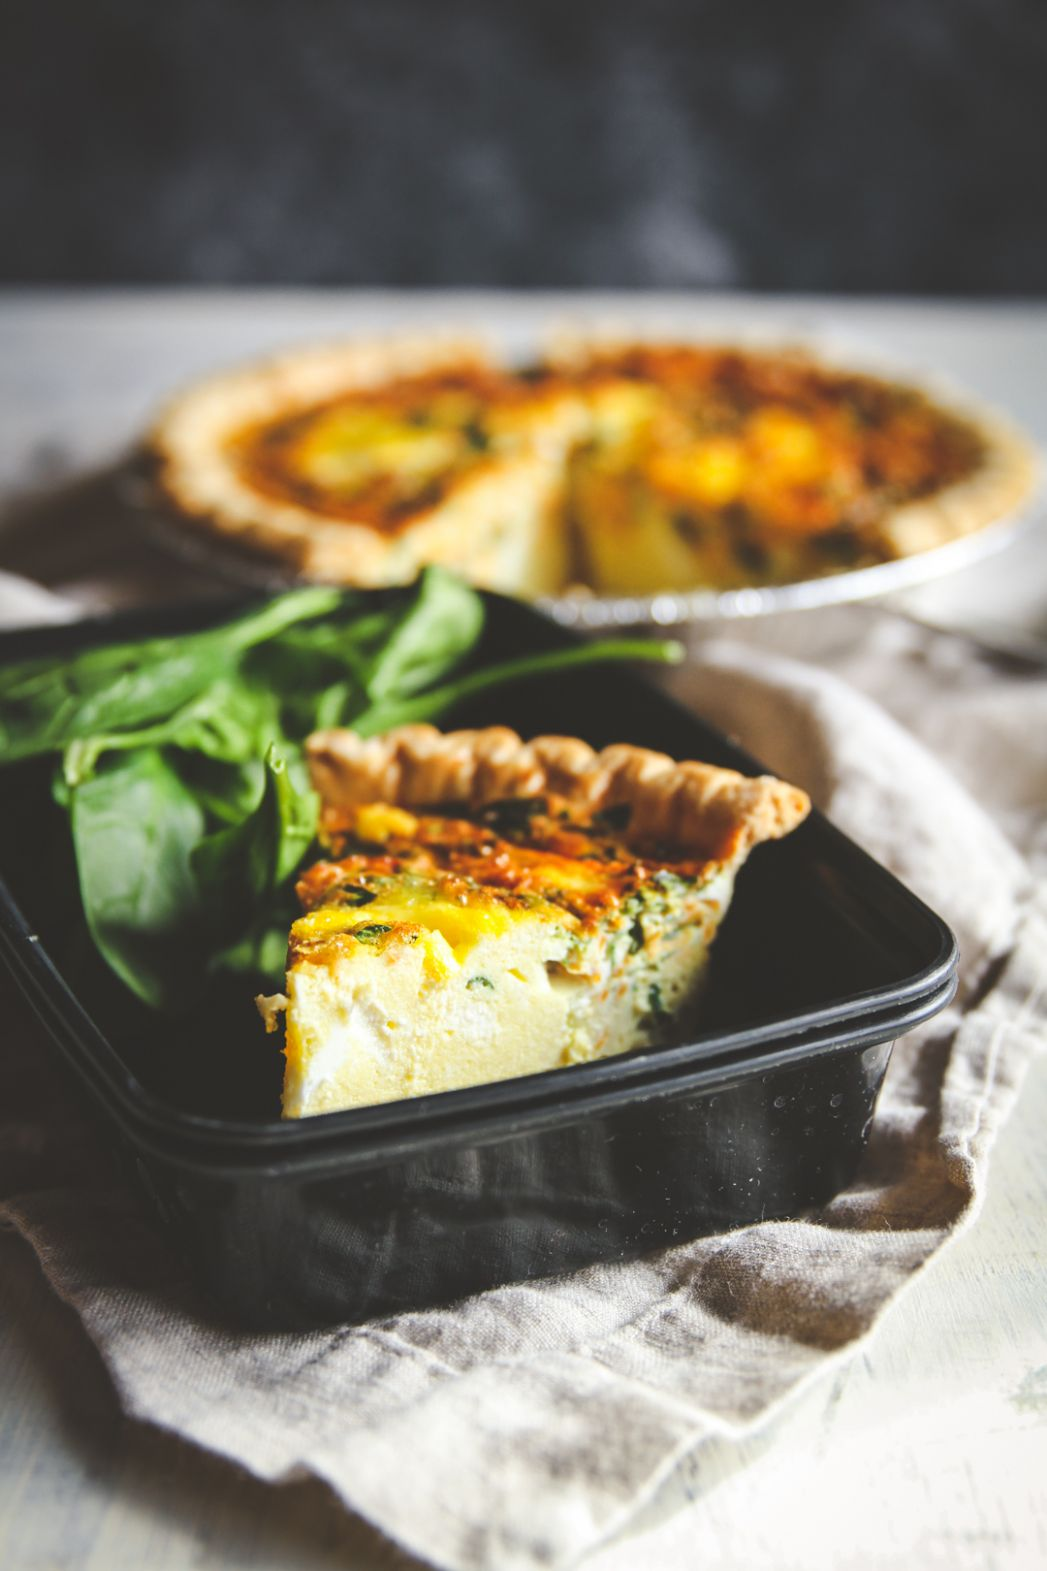 Make Ahead Freezer Meals Quiche Recipe - Sweetphi - Potato Recipes That Freeze Well